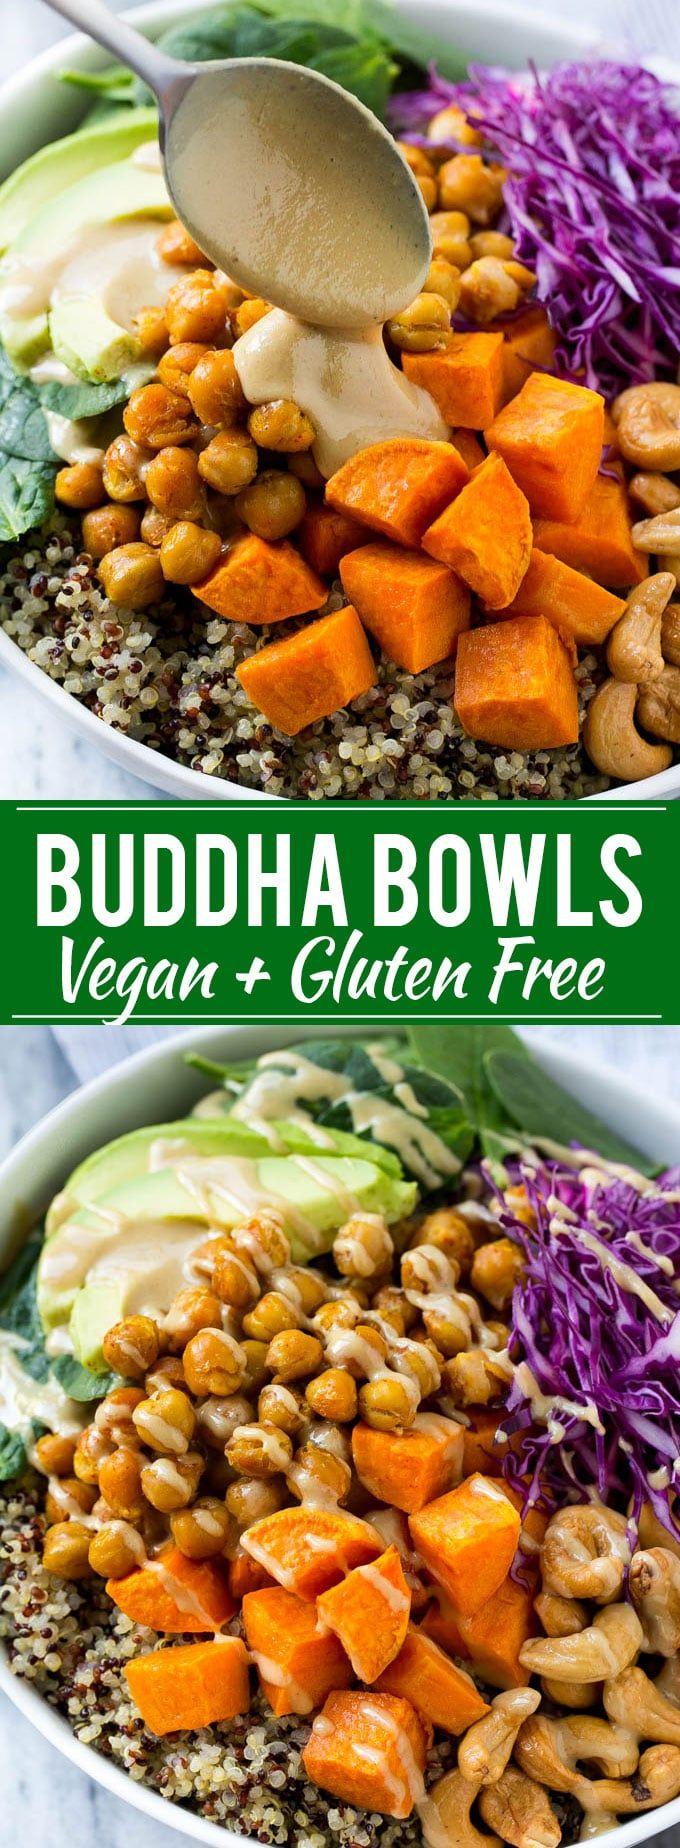 ****For more recipes, fitness, and positivity, follow Healthy FitMom on FB at: Facebook.com/HealthyFitMom0/ ******** Buddha Bowl Recipe | Vegan Buddha Bowl | Quinoa Bowl | Sweet Potato Recipe | Quinoa Recipe